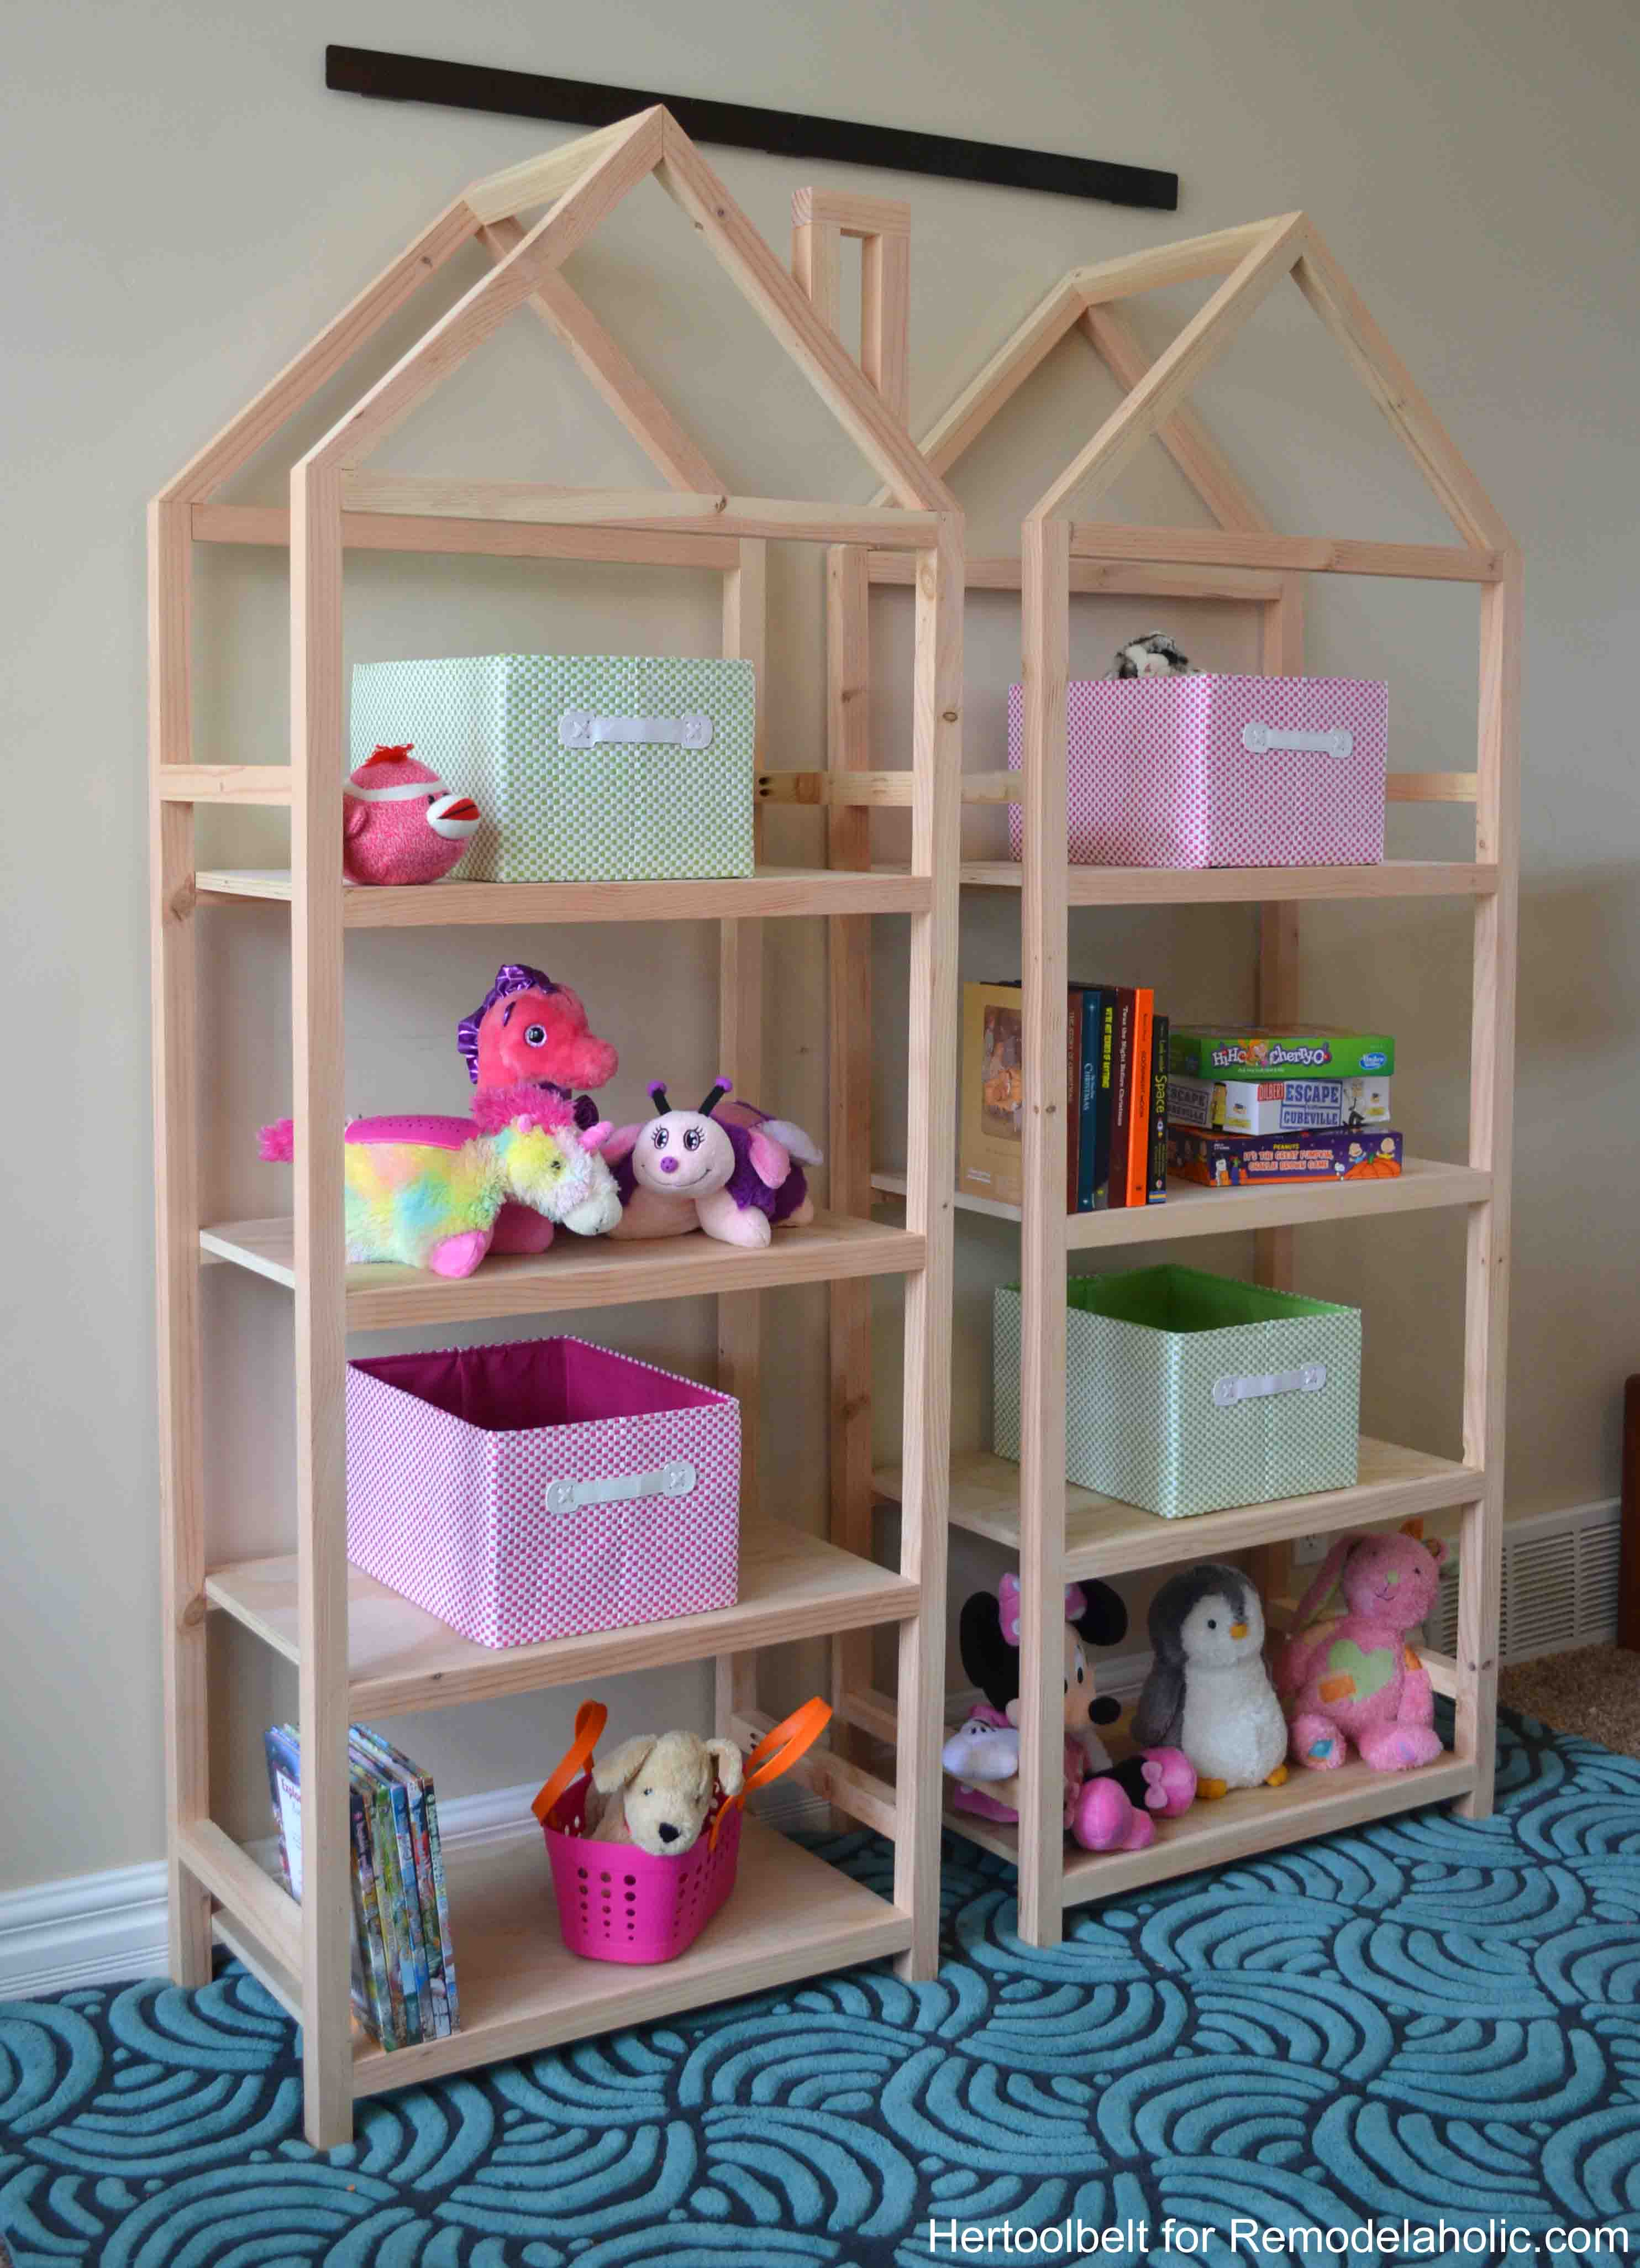 Get Organized With These Adorable House Frame Bookshelves Free And Easy Plans To Build A